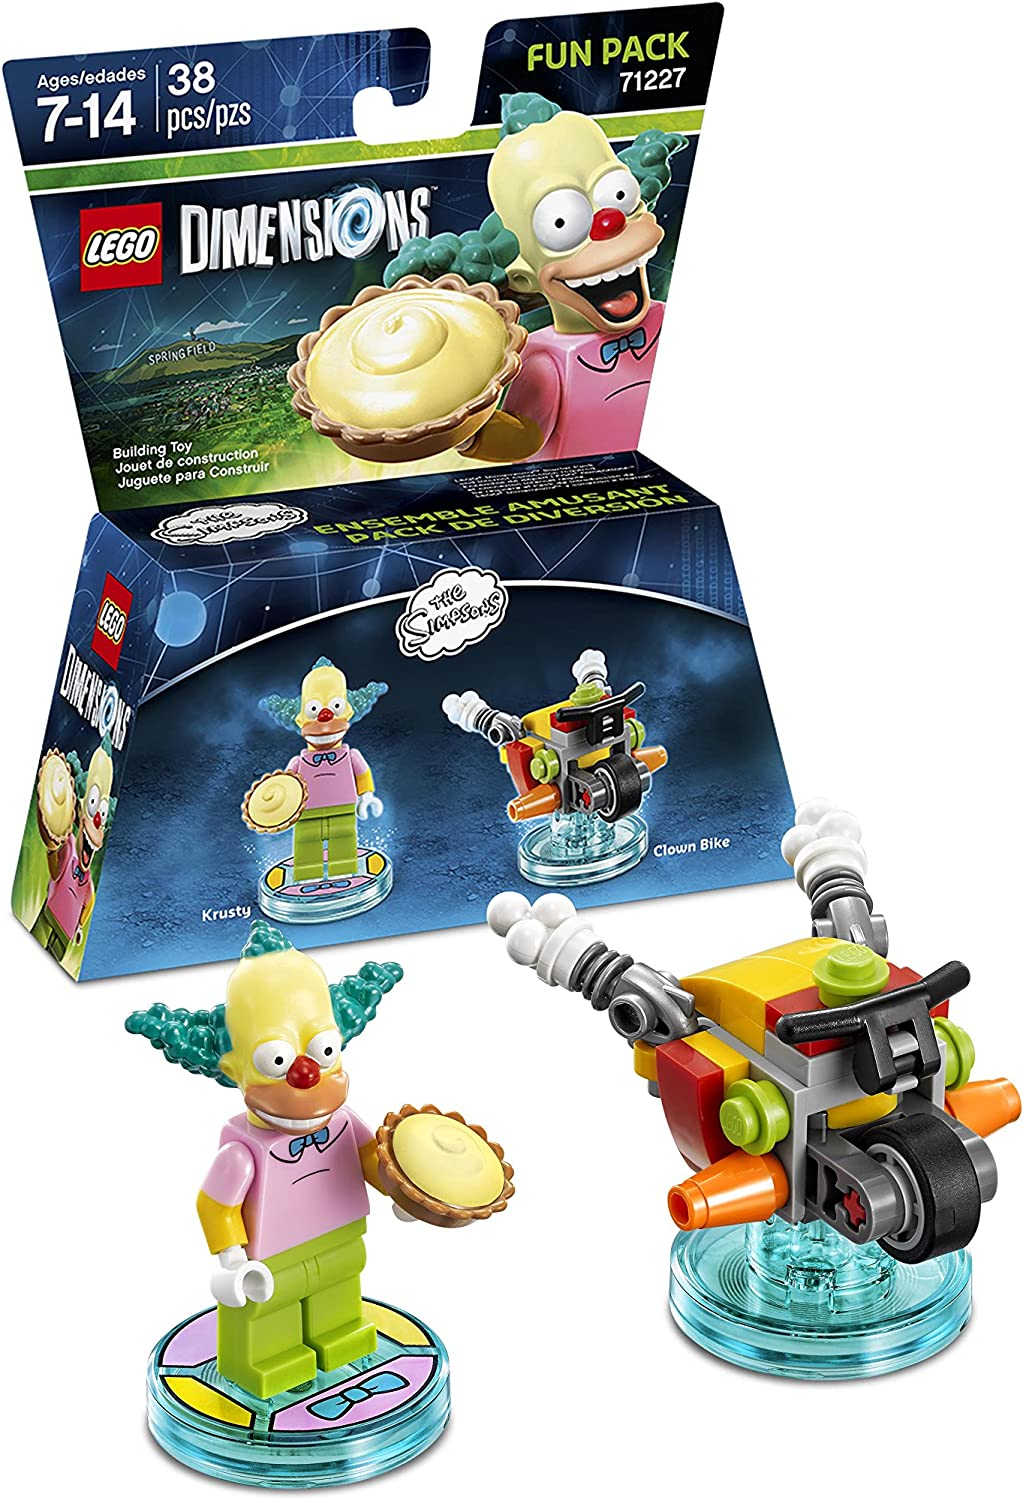 LEGO Dimensions, Simpsons Krusty Fun Pack by Warner Home Video - Games: Amazon.es: Juguetes y juegos